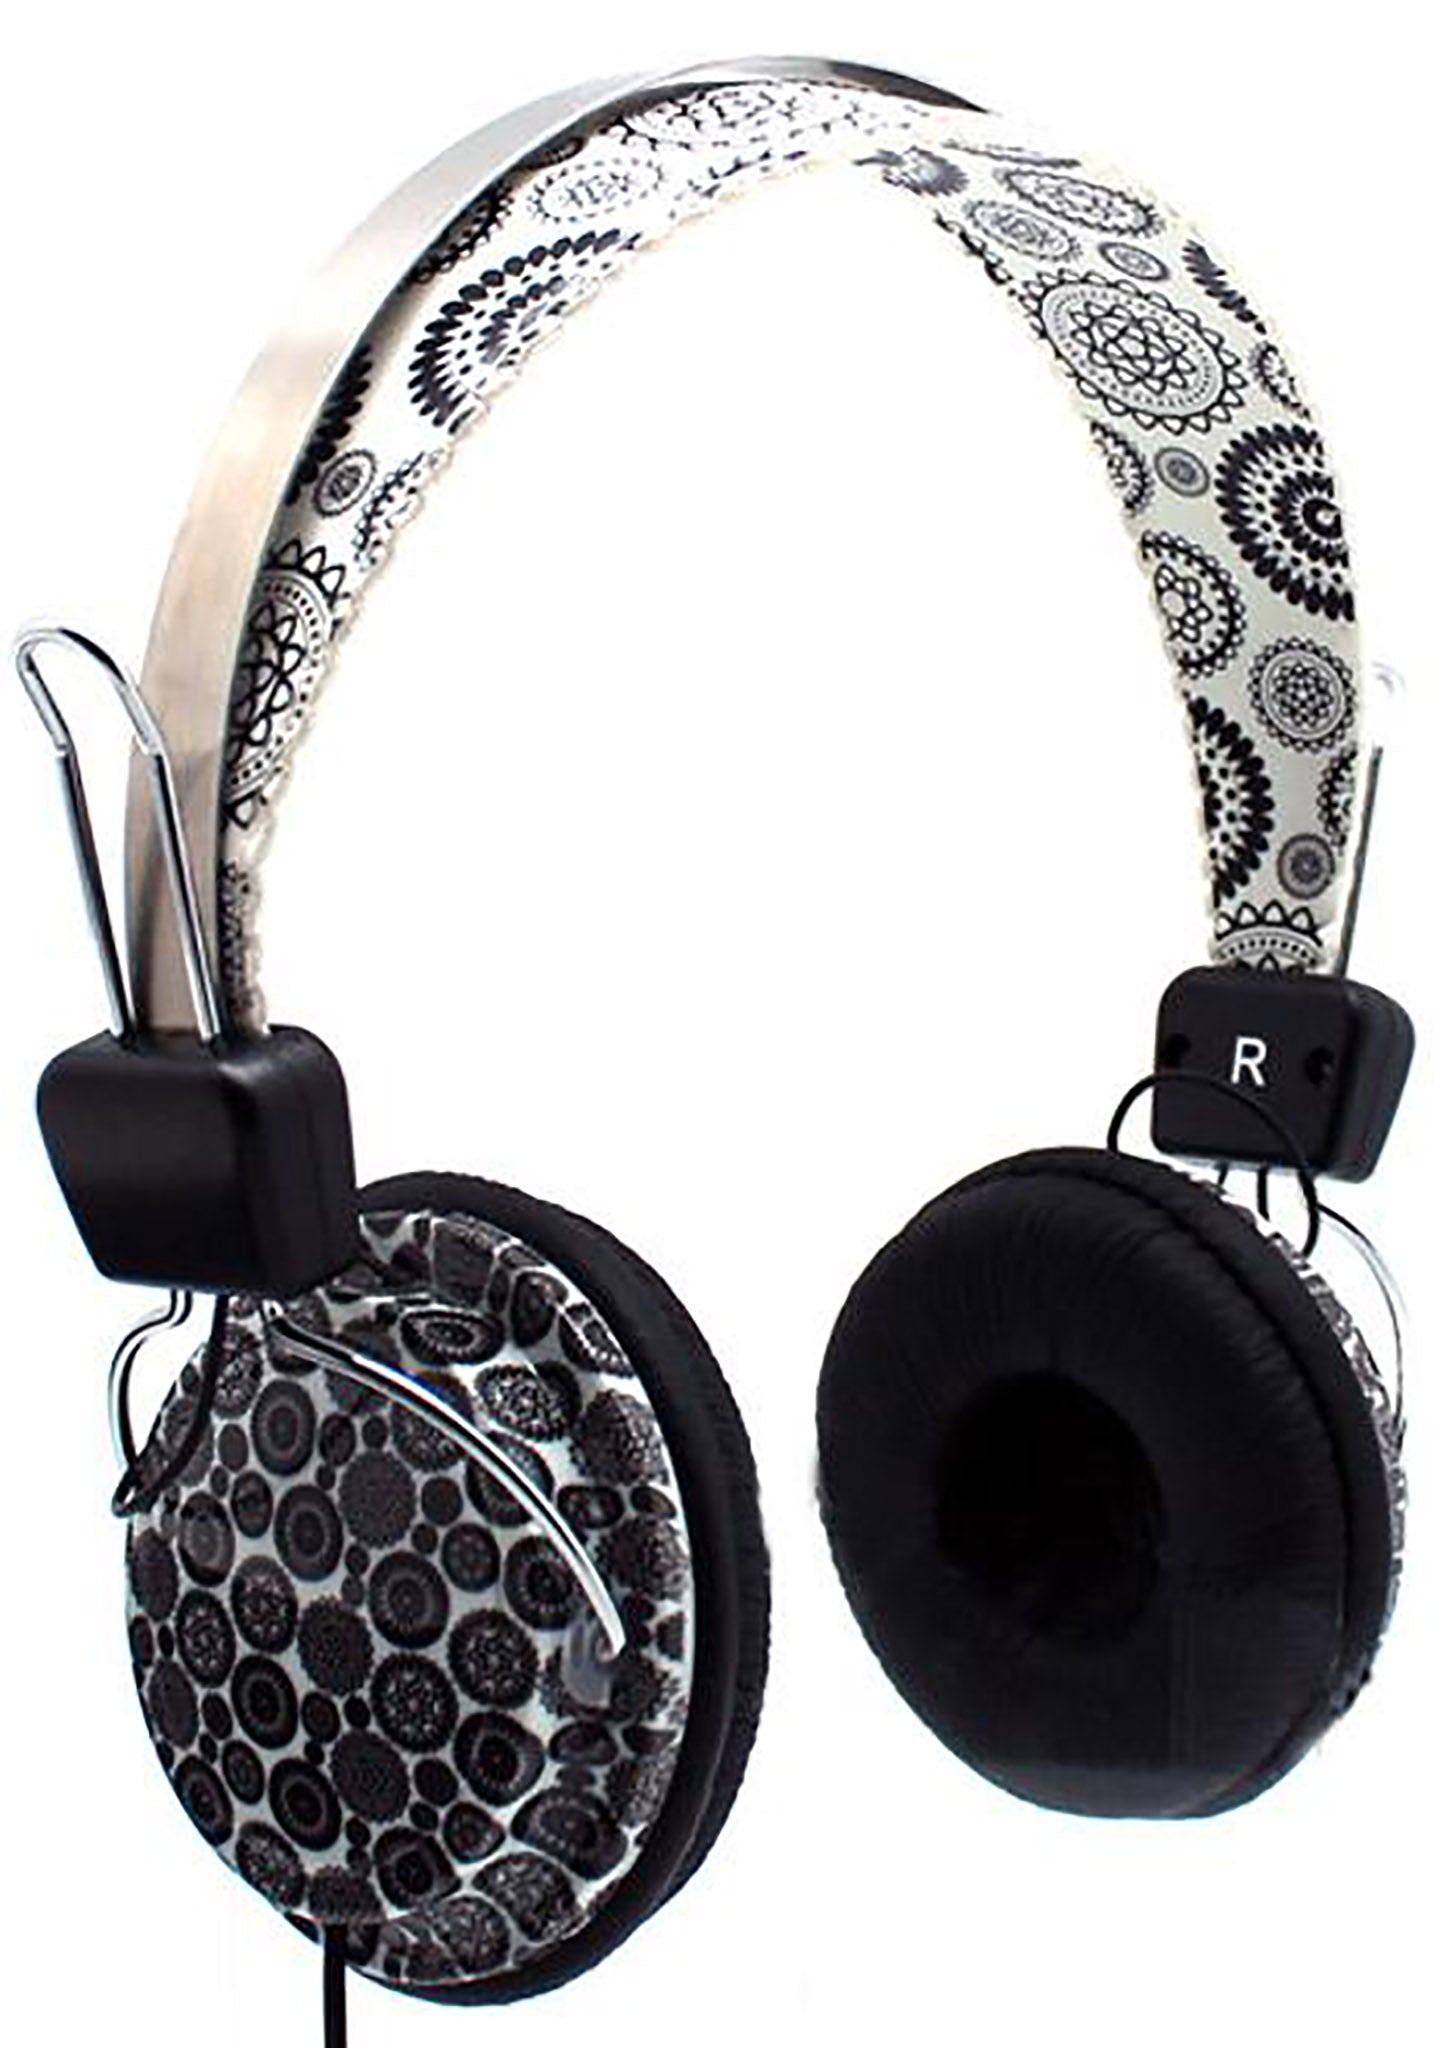 Black Paisley Stereo Headphones